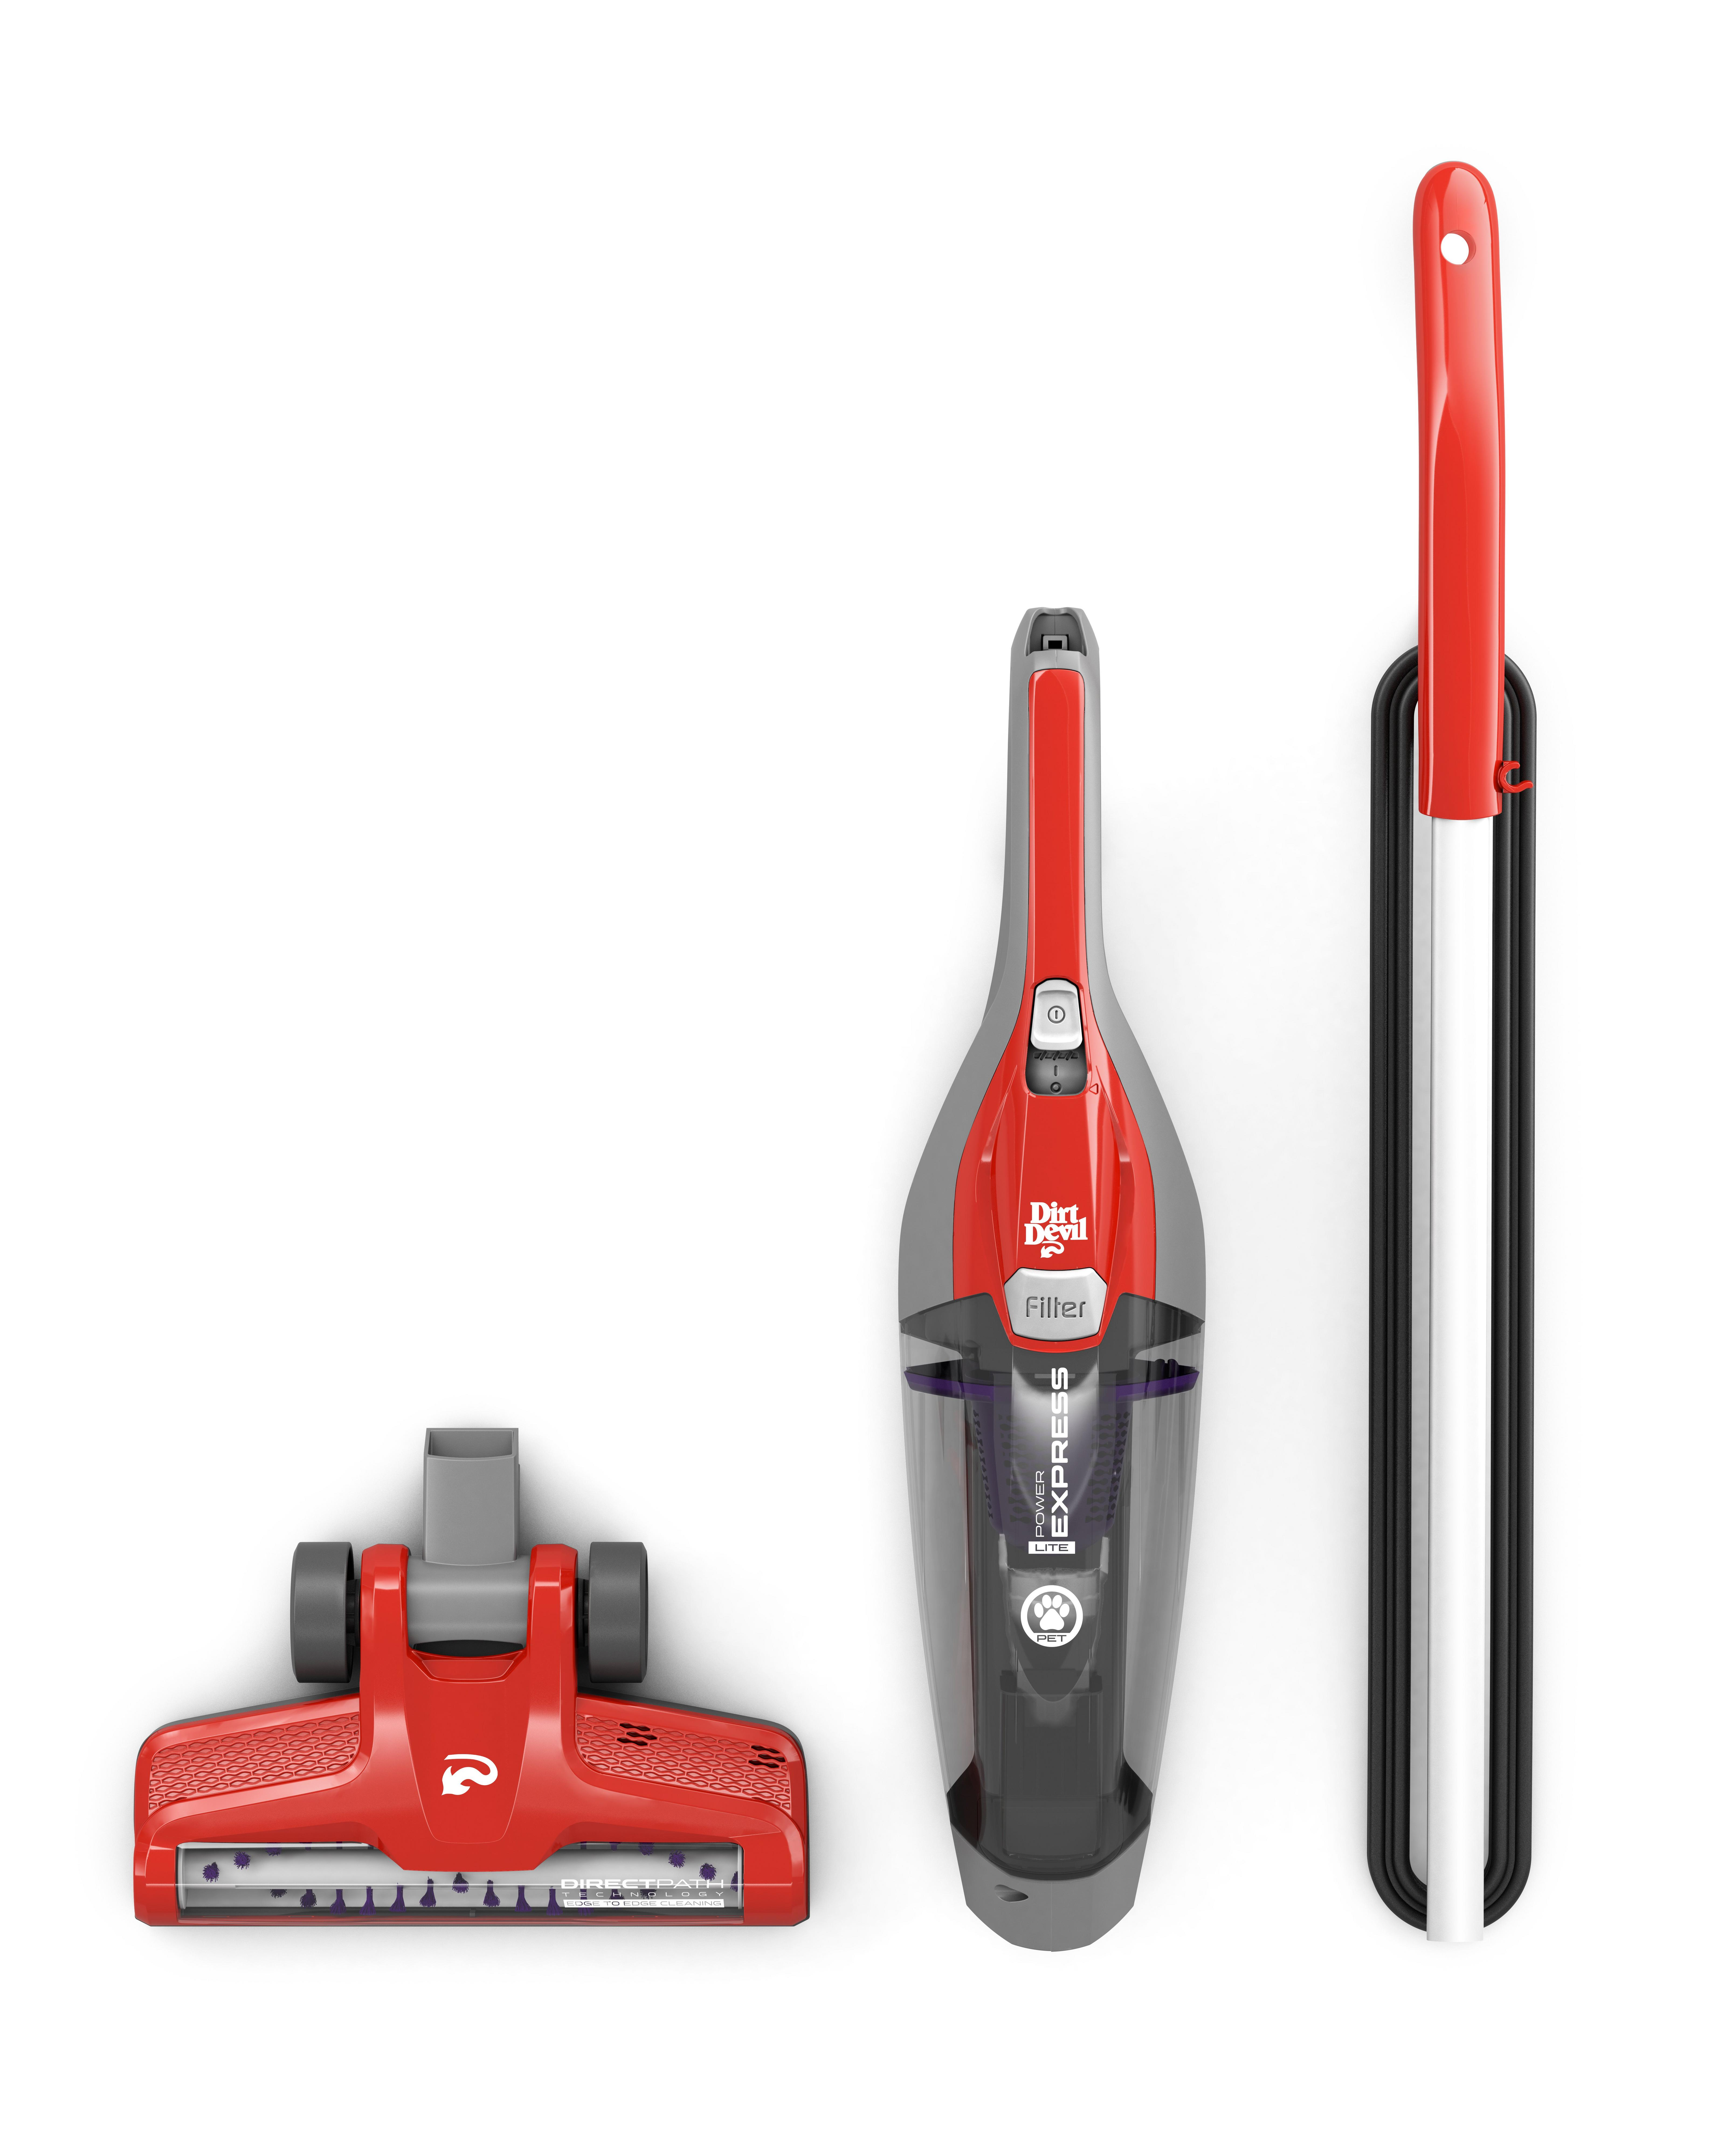 Power Express Lite 3-in-1 Corded Stick Vacuum8